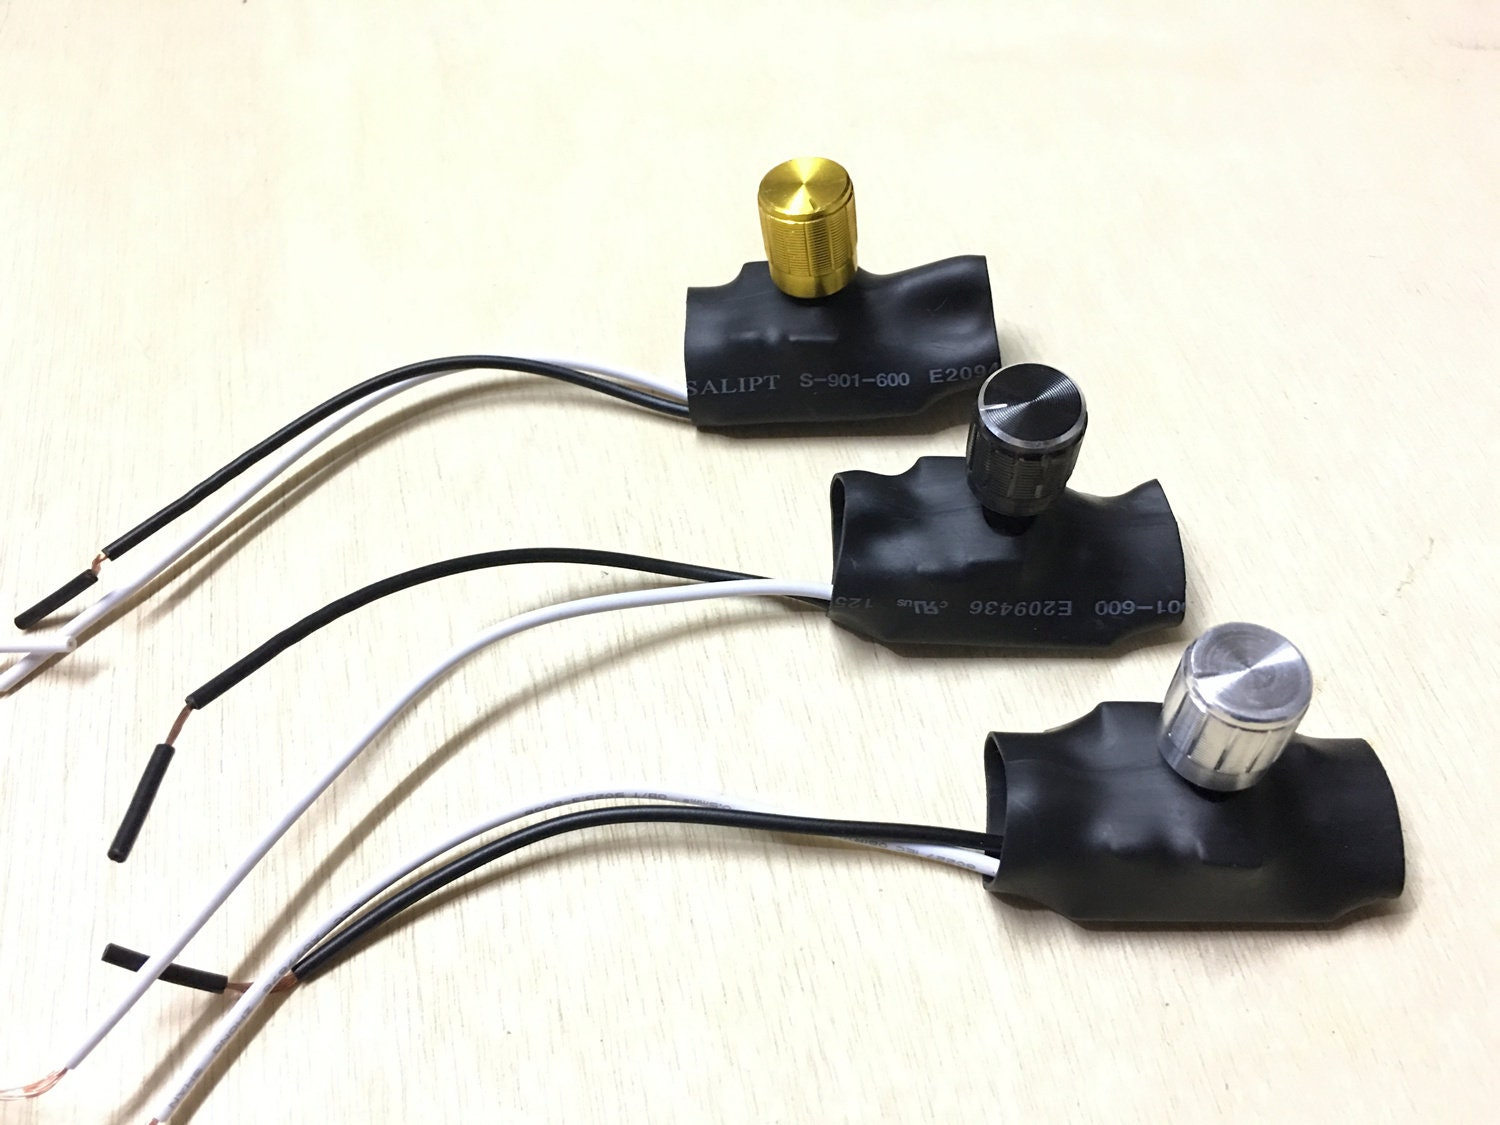 Light Lamp Dimmer Switch Table, Bedside Lamp With Dimmer Switch